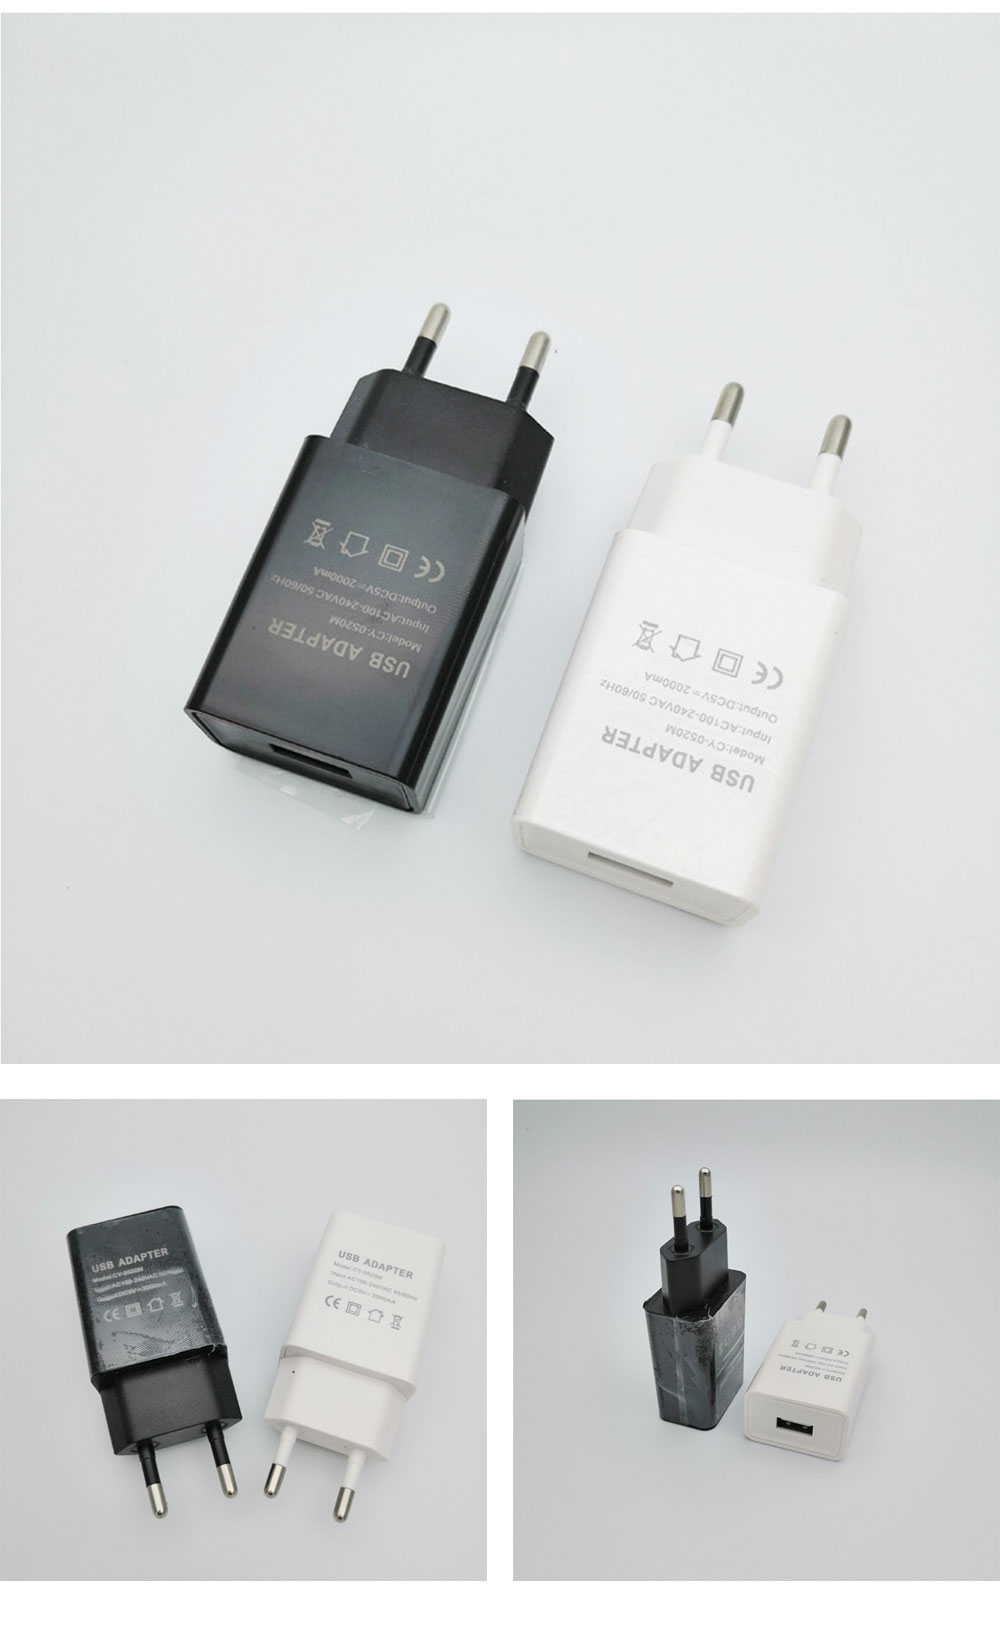 Intelligent Phone Charger, Charger for iPhone, SmartPhone, 2A USB Mobile Phone Charger 6